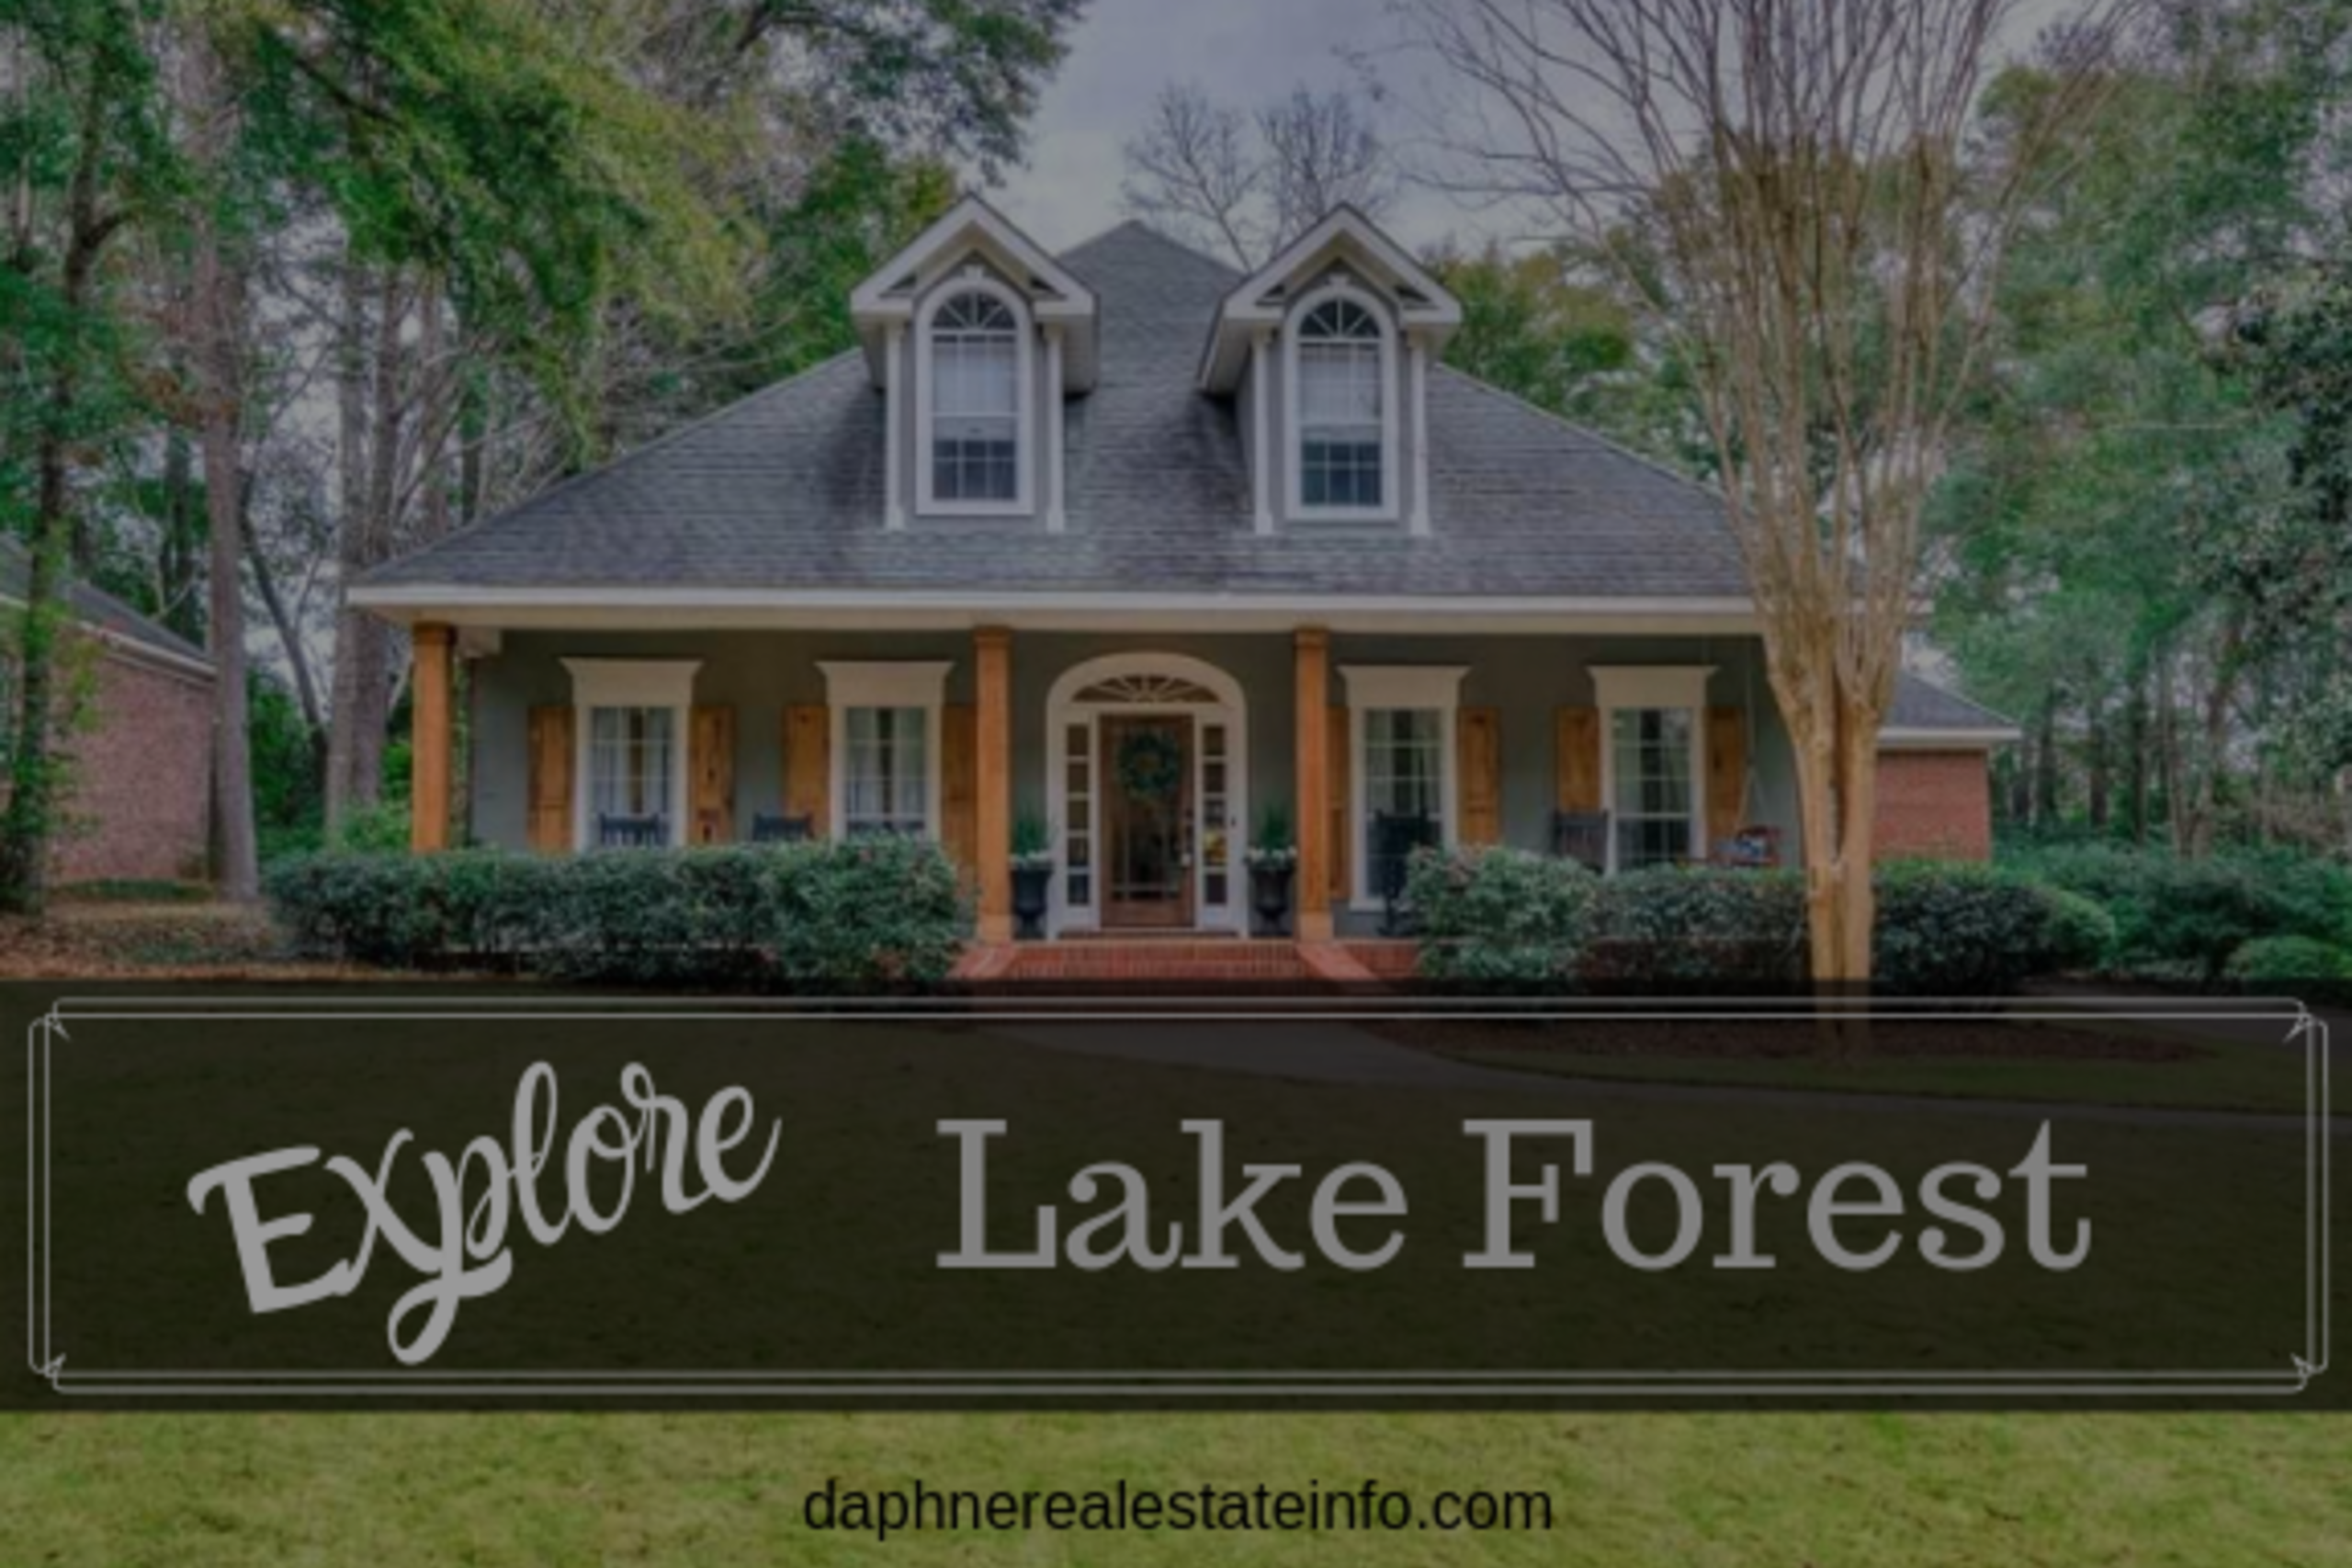 Explore Lake Forest